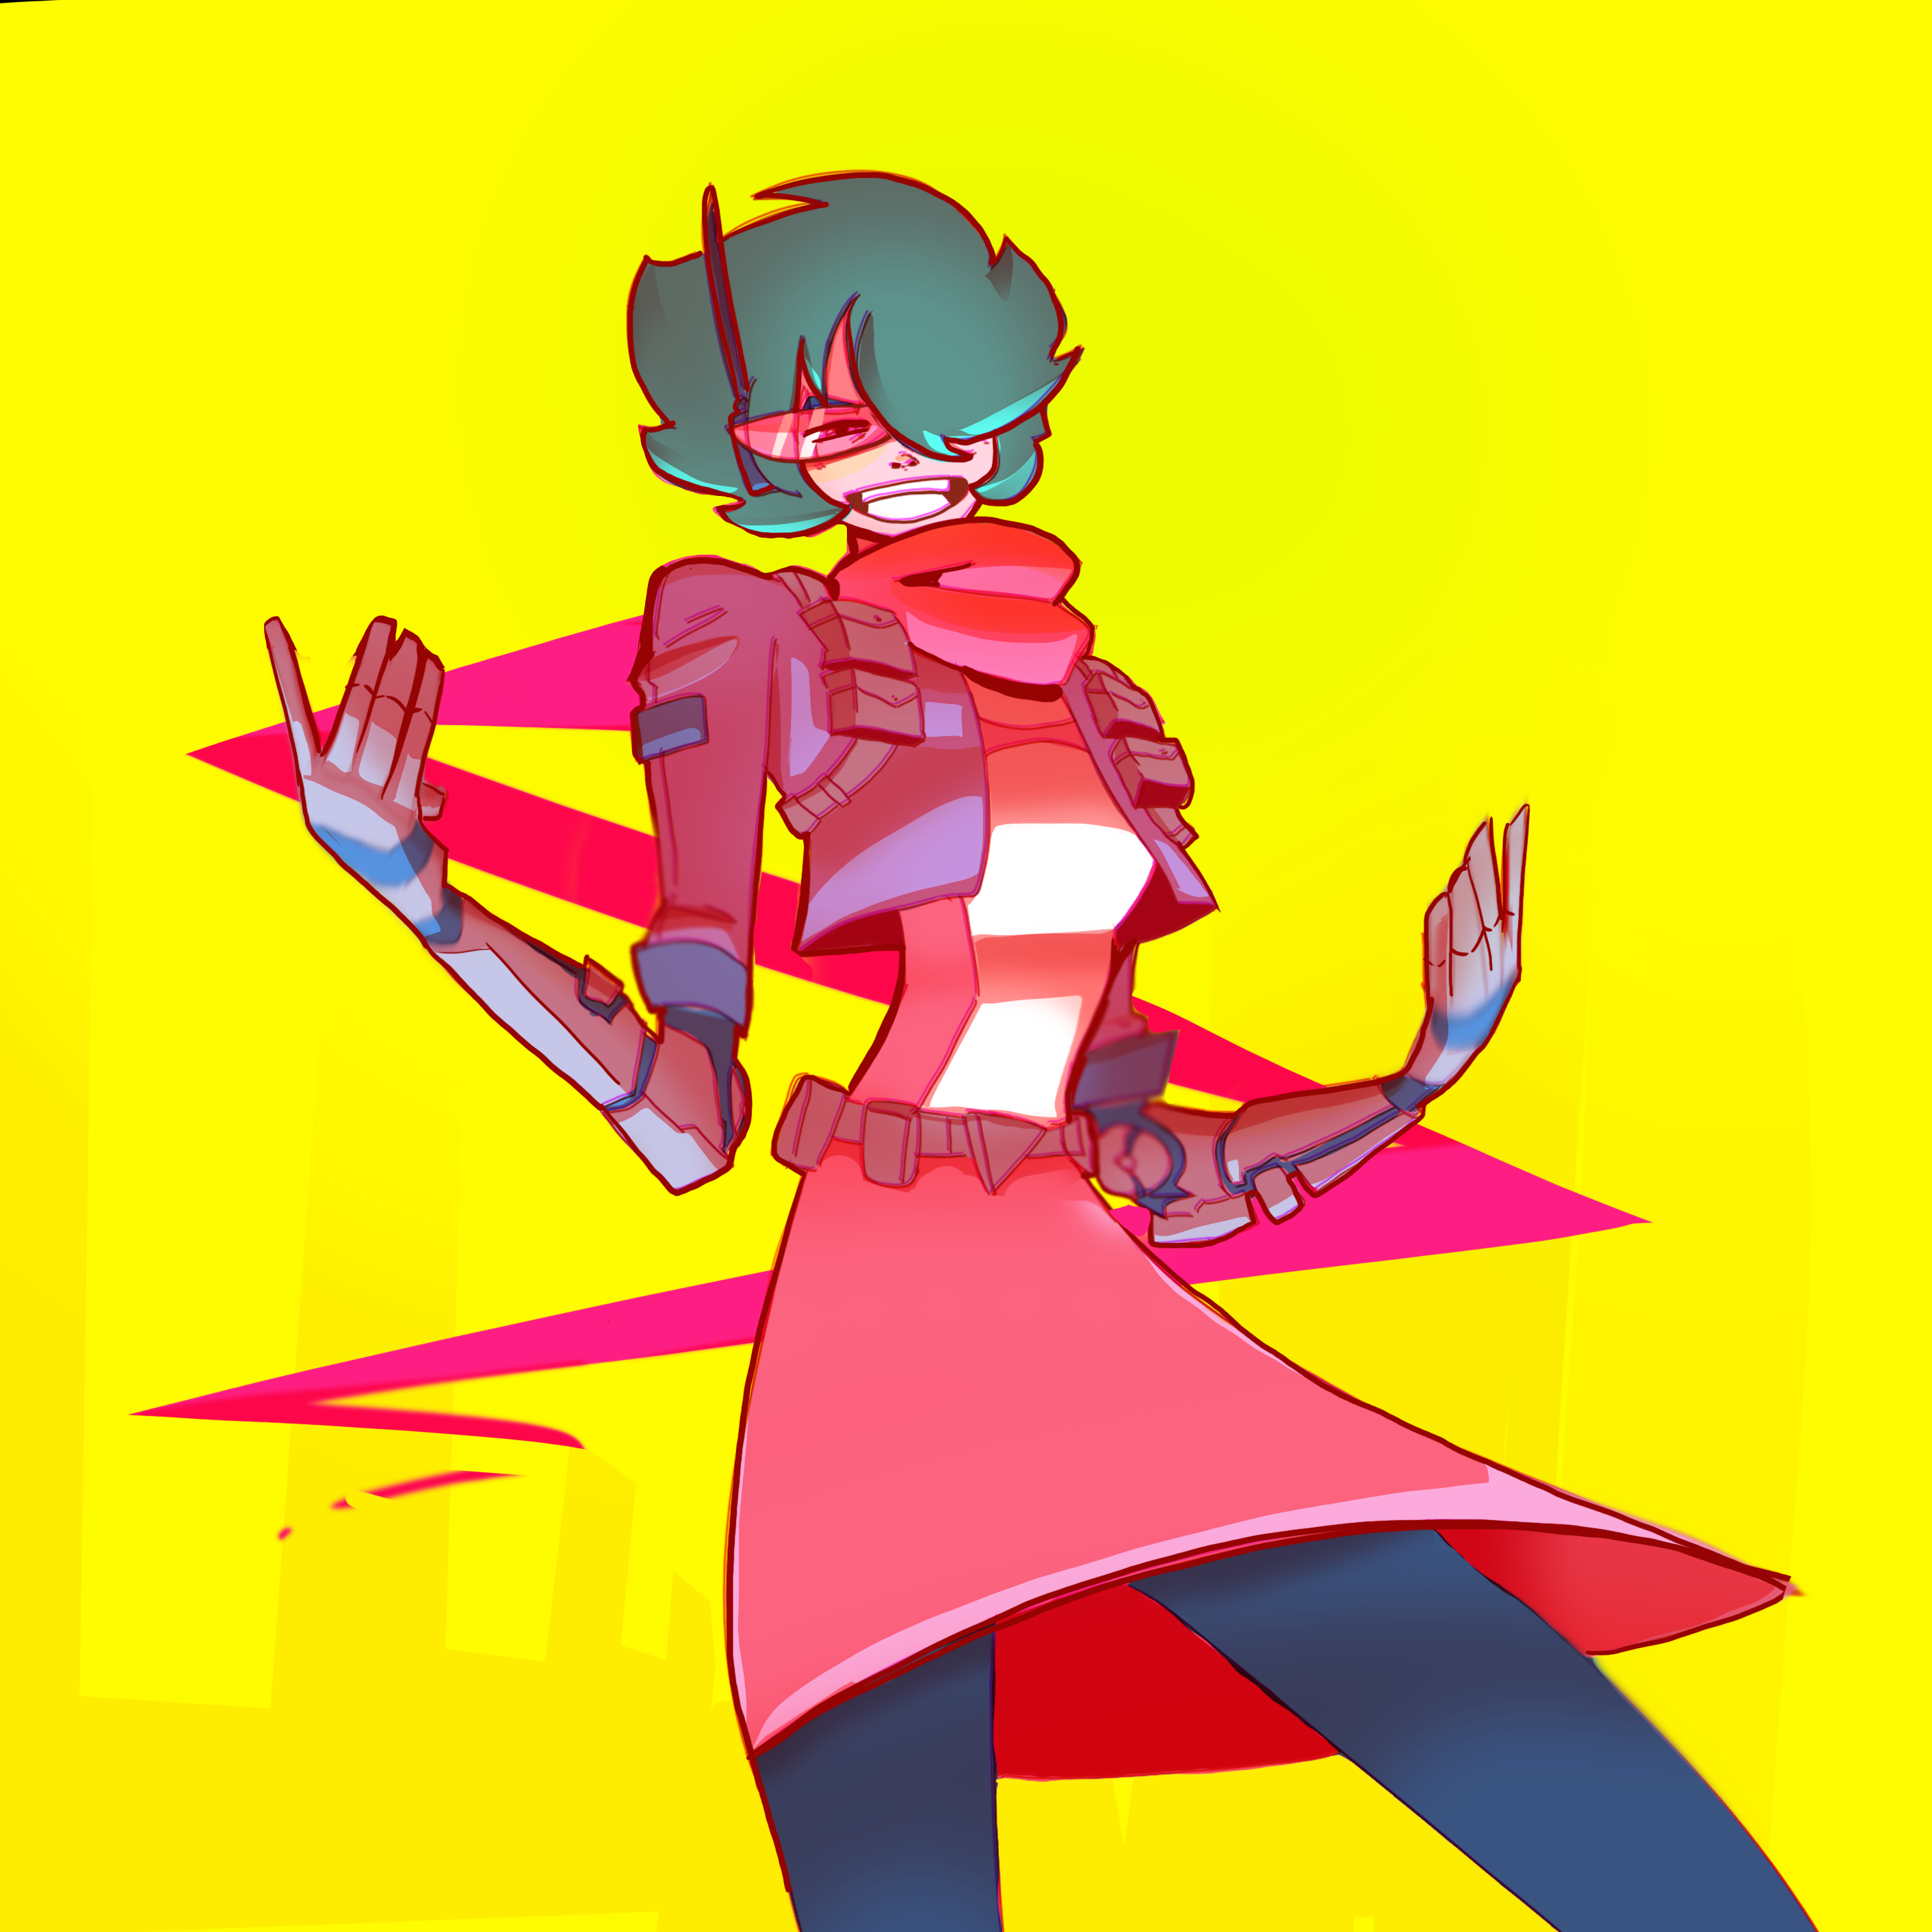 Neon Buster